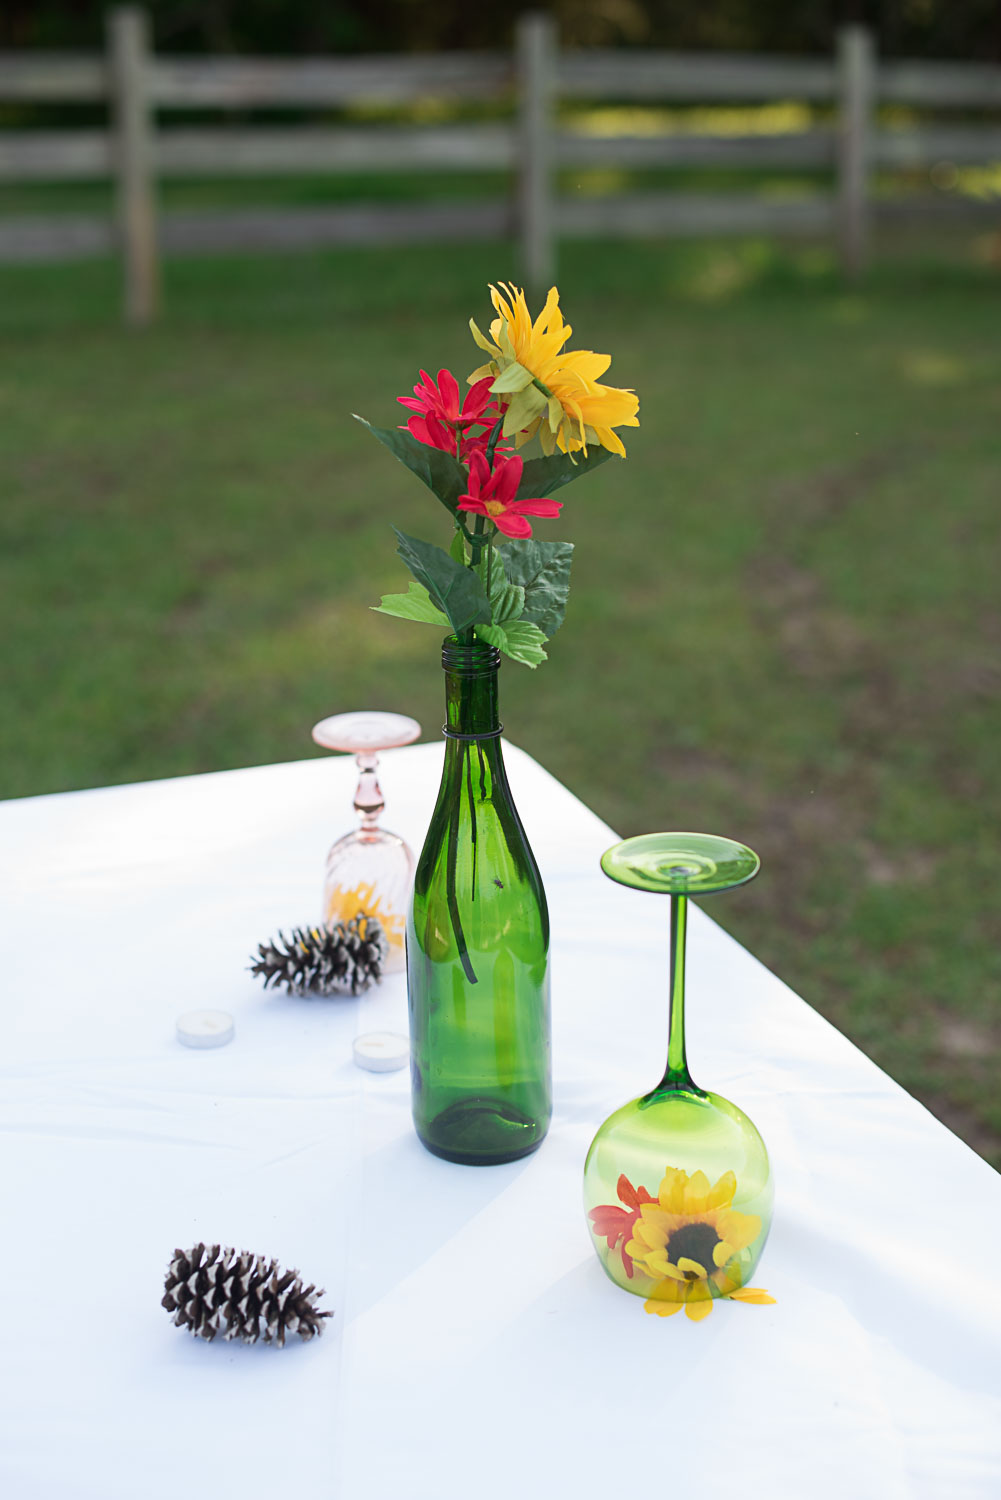 104 wine bottle and wine glass table decorations.jpg